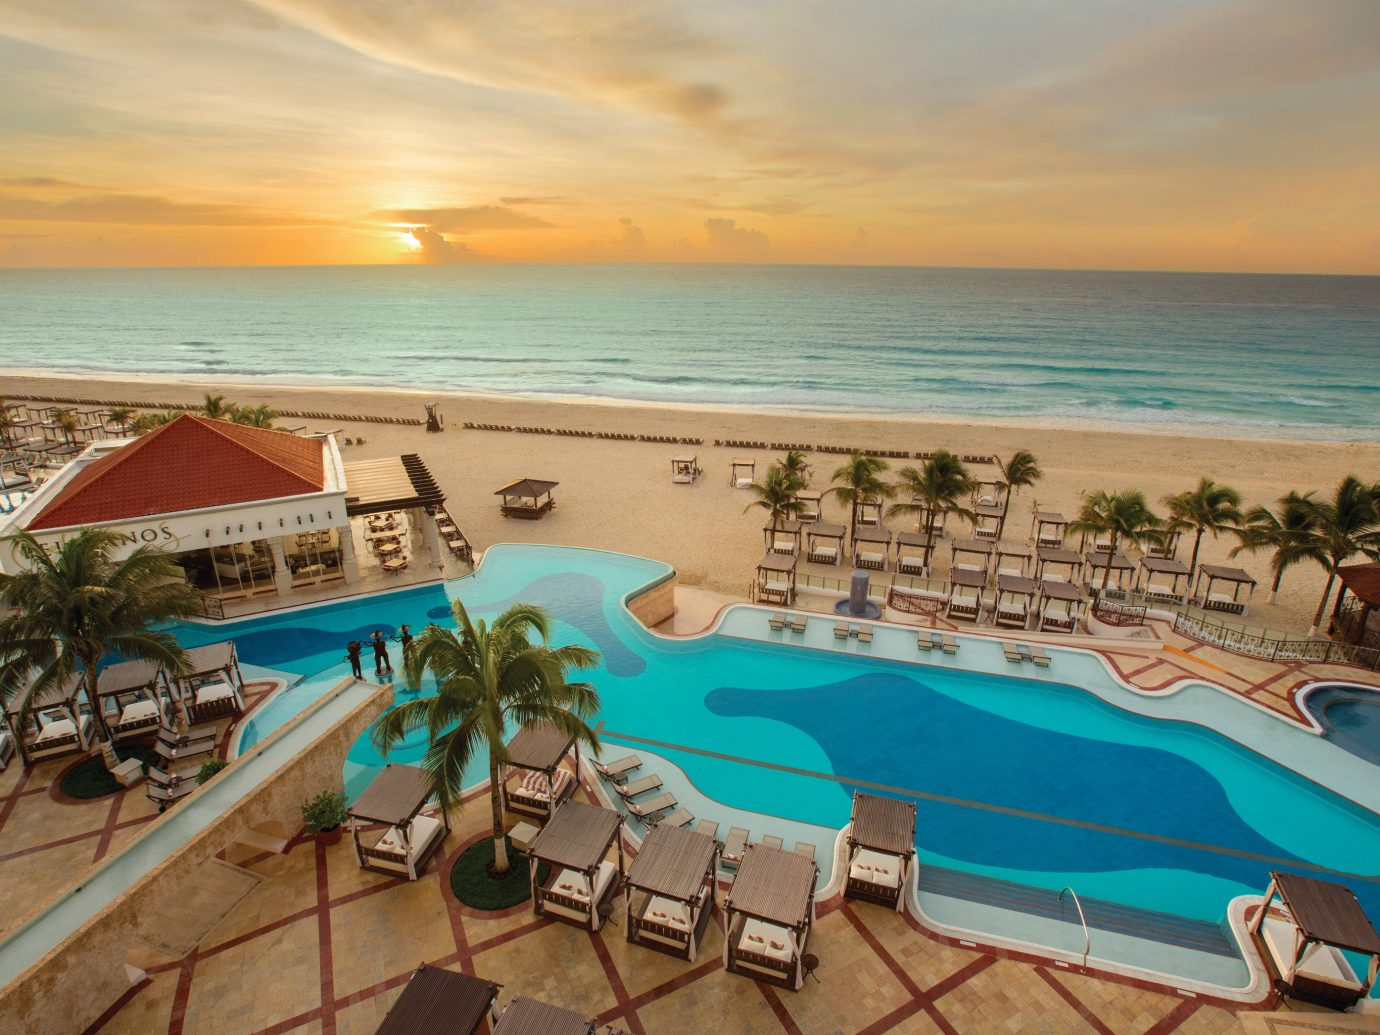 Hotels sky outdoor water Beach ground Resort Sea swimming pool leisure vacation caribbean Ocean tourism horizon resort town lawn real estate coastal and oceanic landforms tropics hotel recreation palm tree shore sand lined sandy